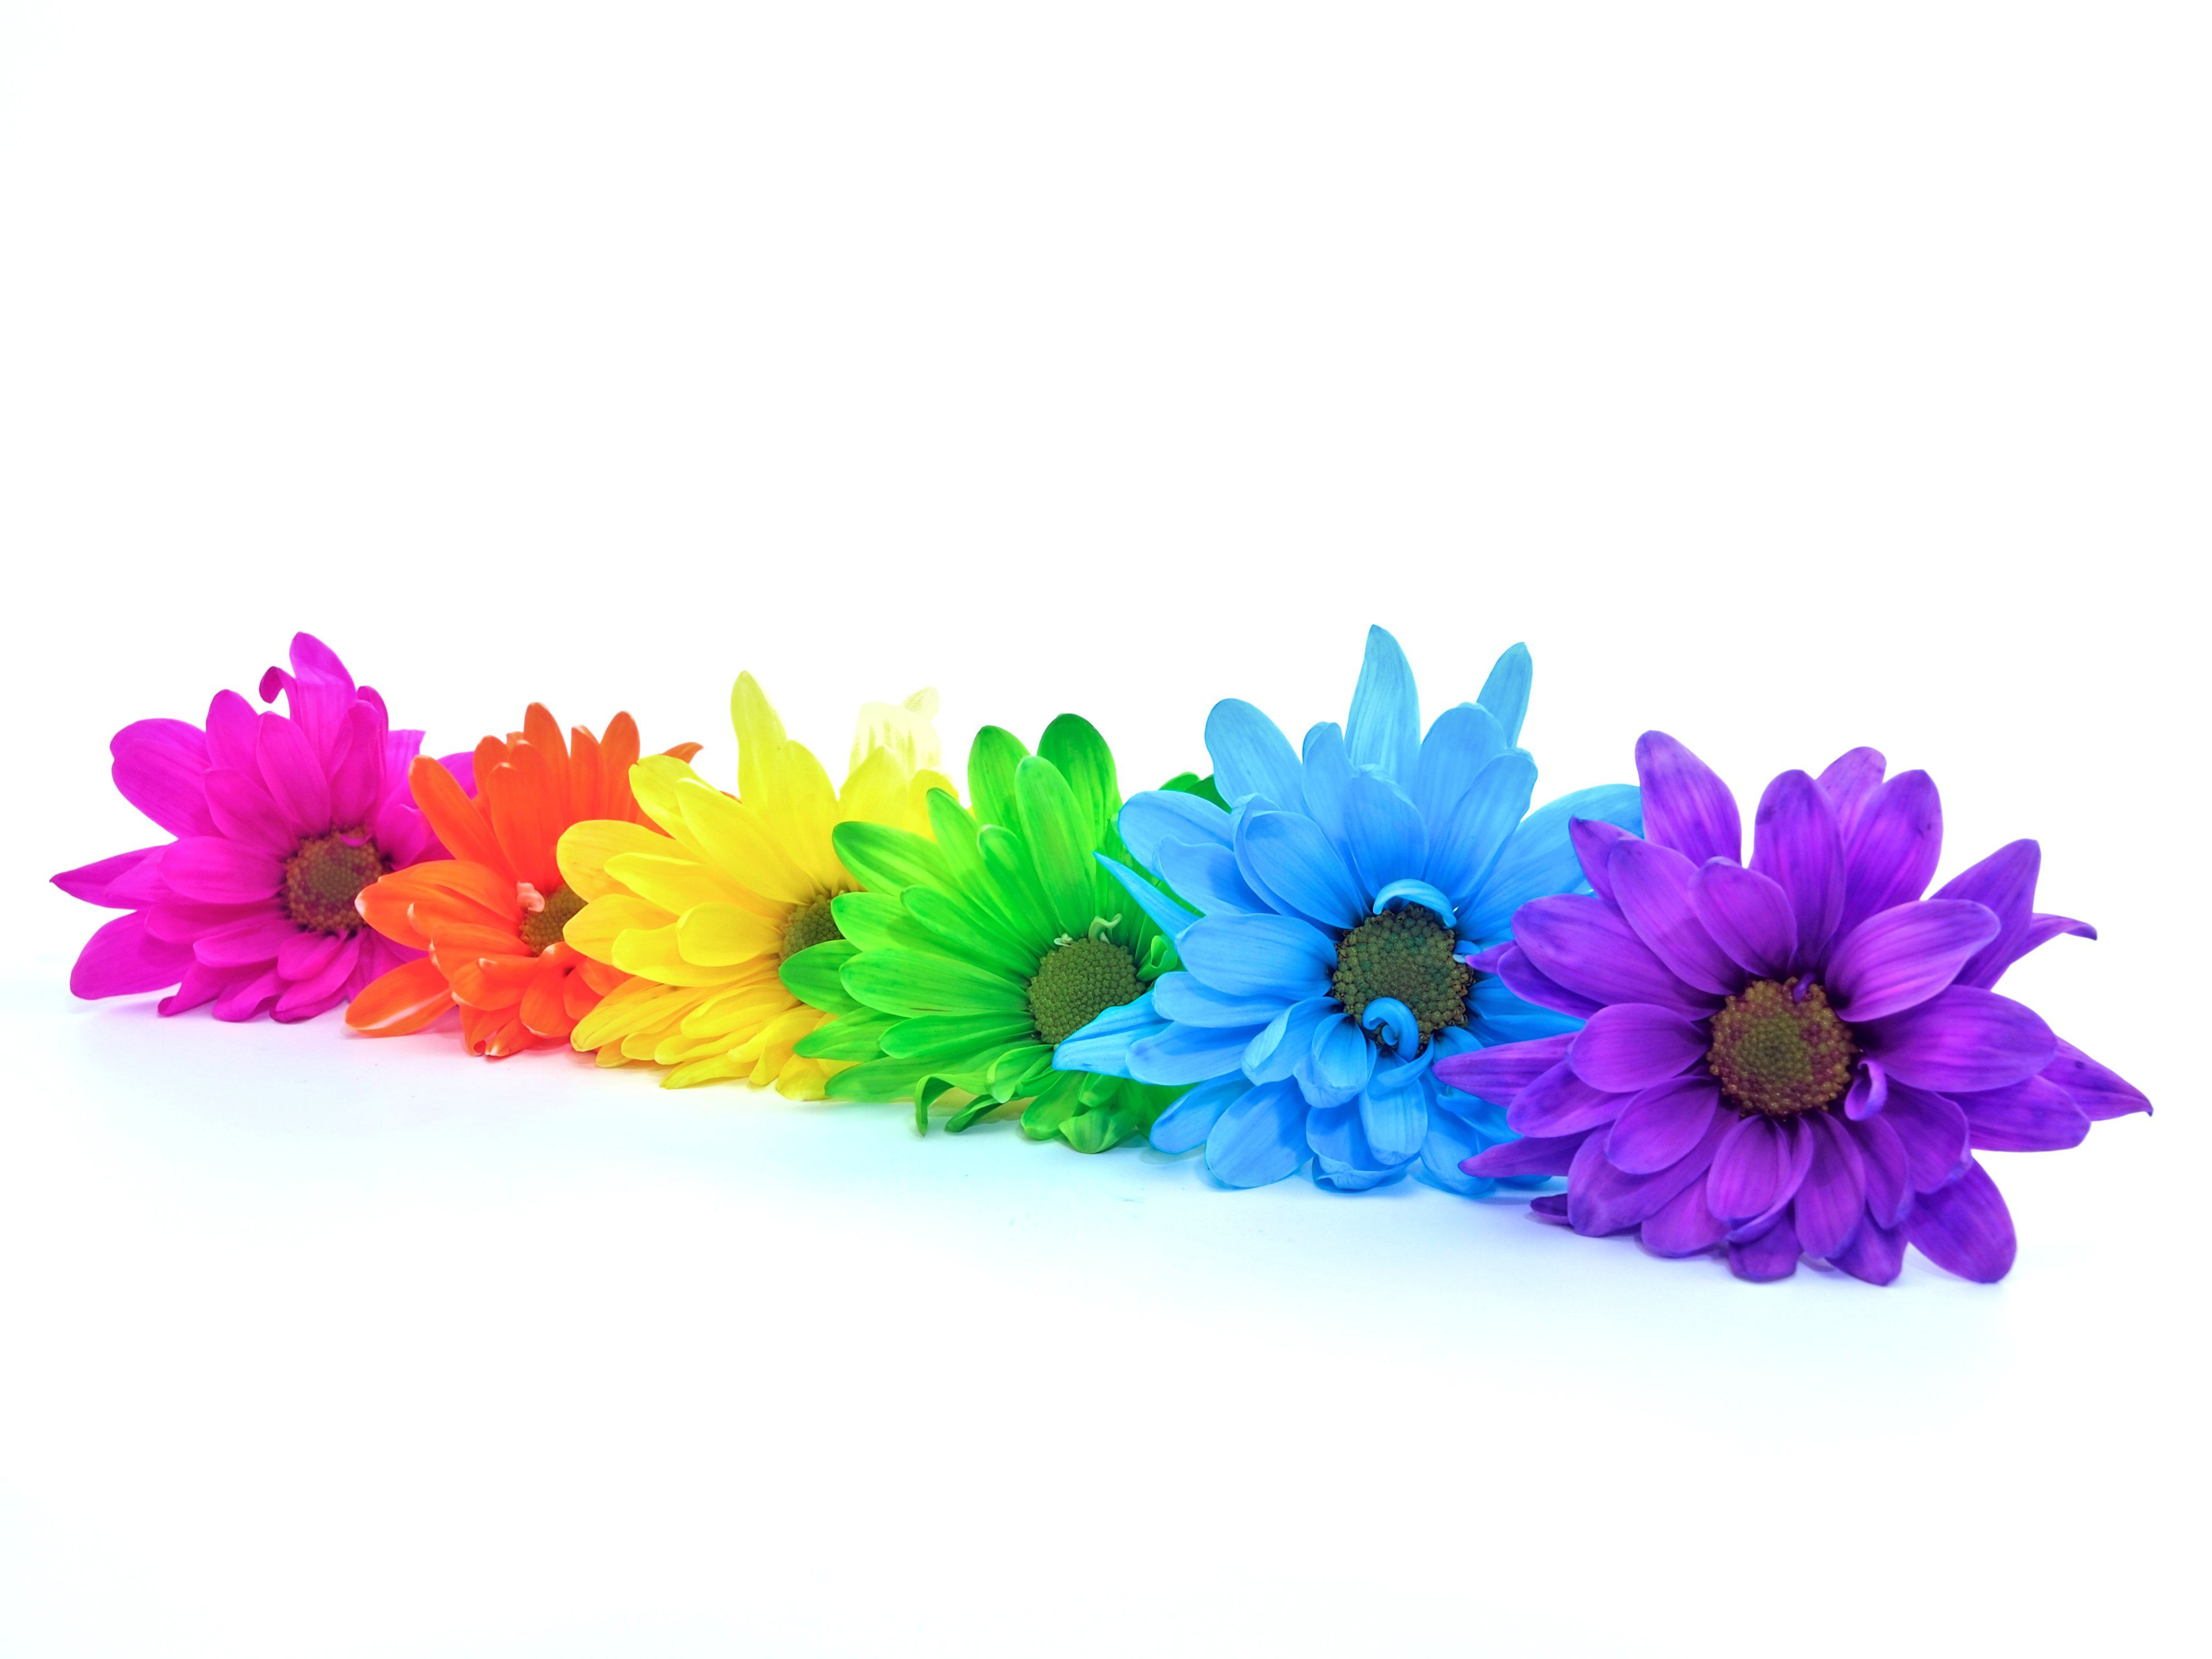 How to make colored flowers izmirmasajfo Choice Image